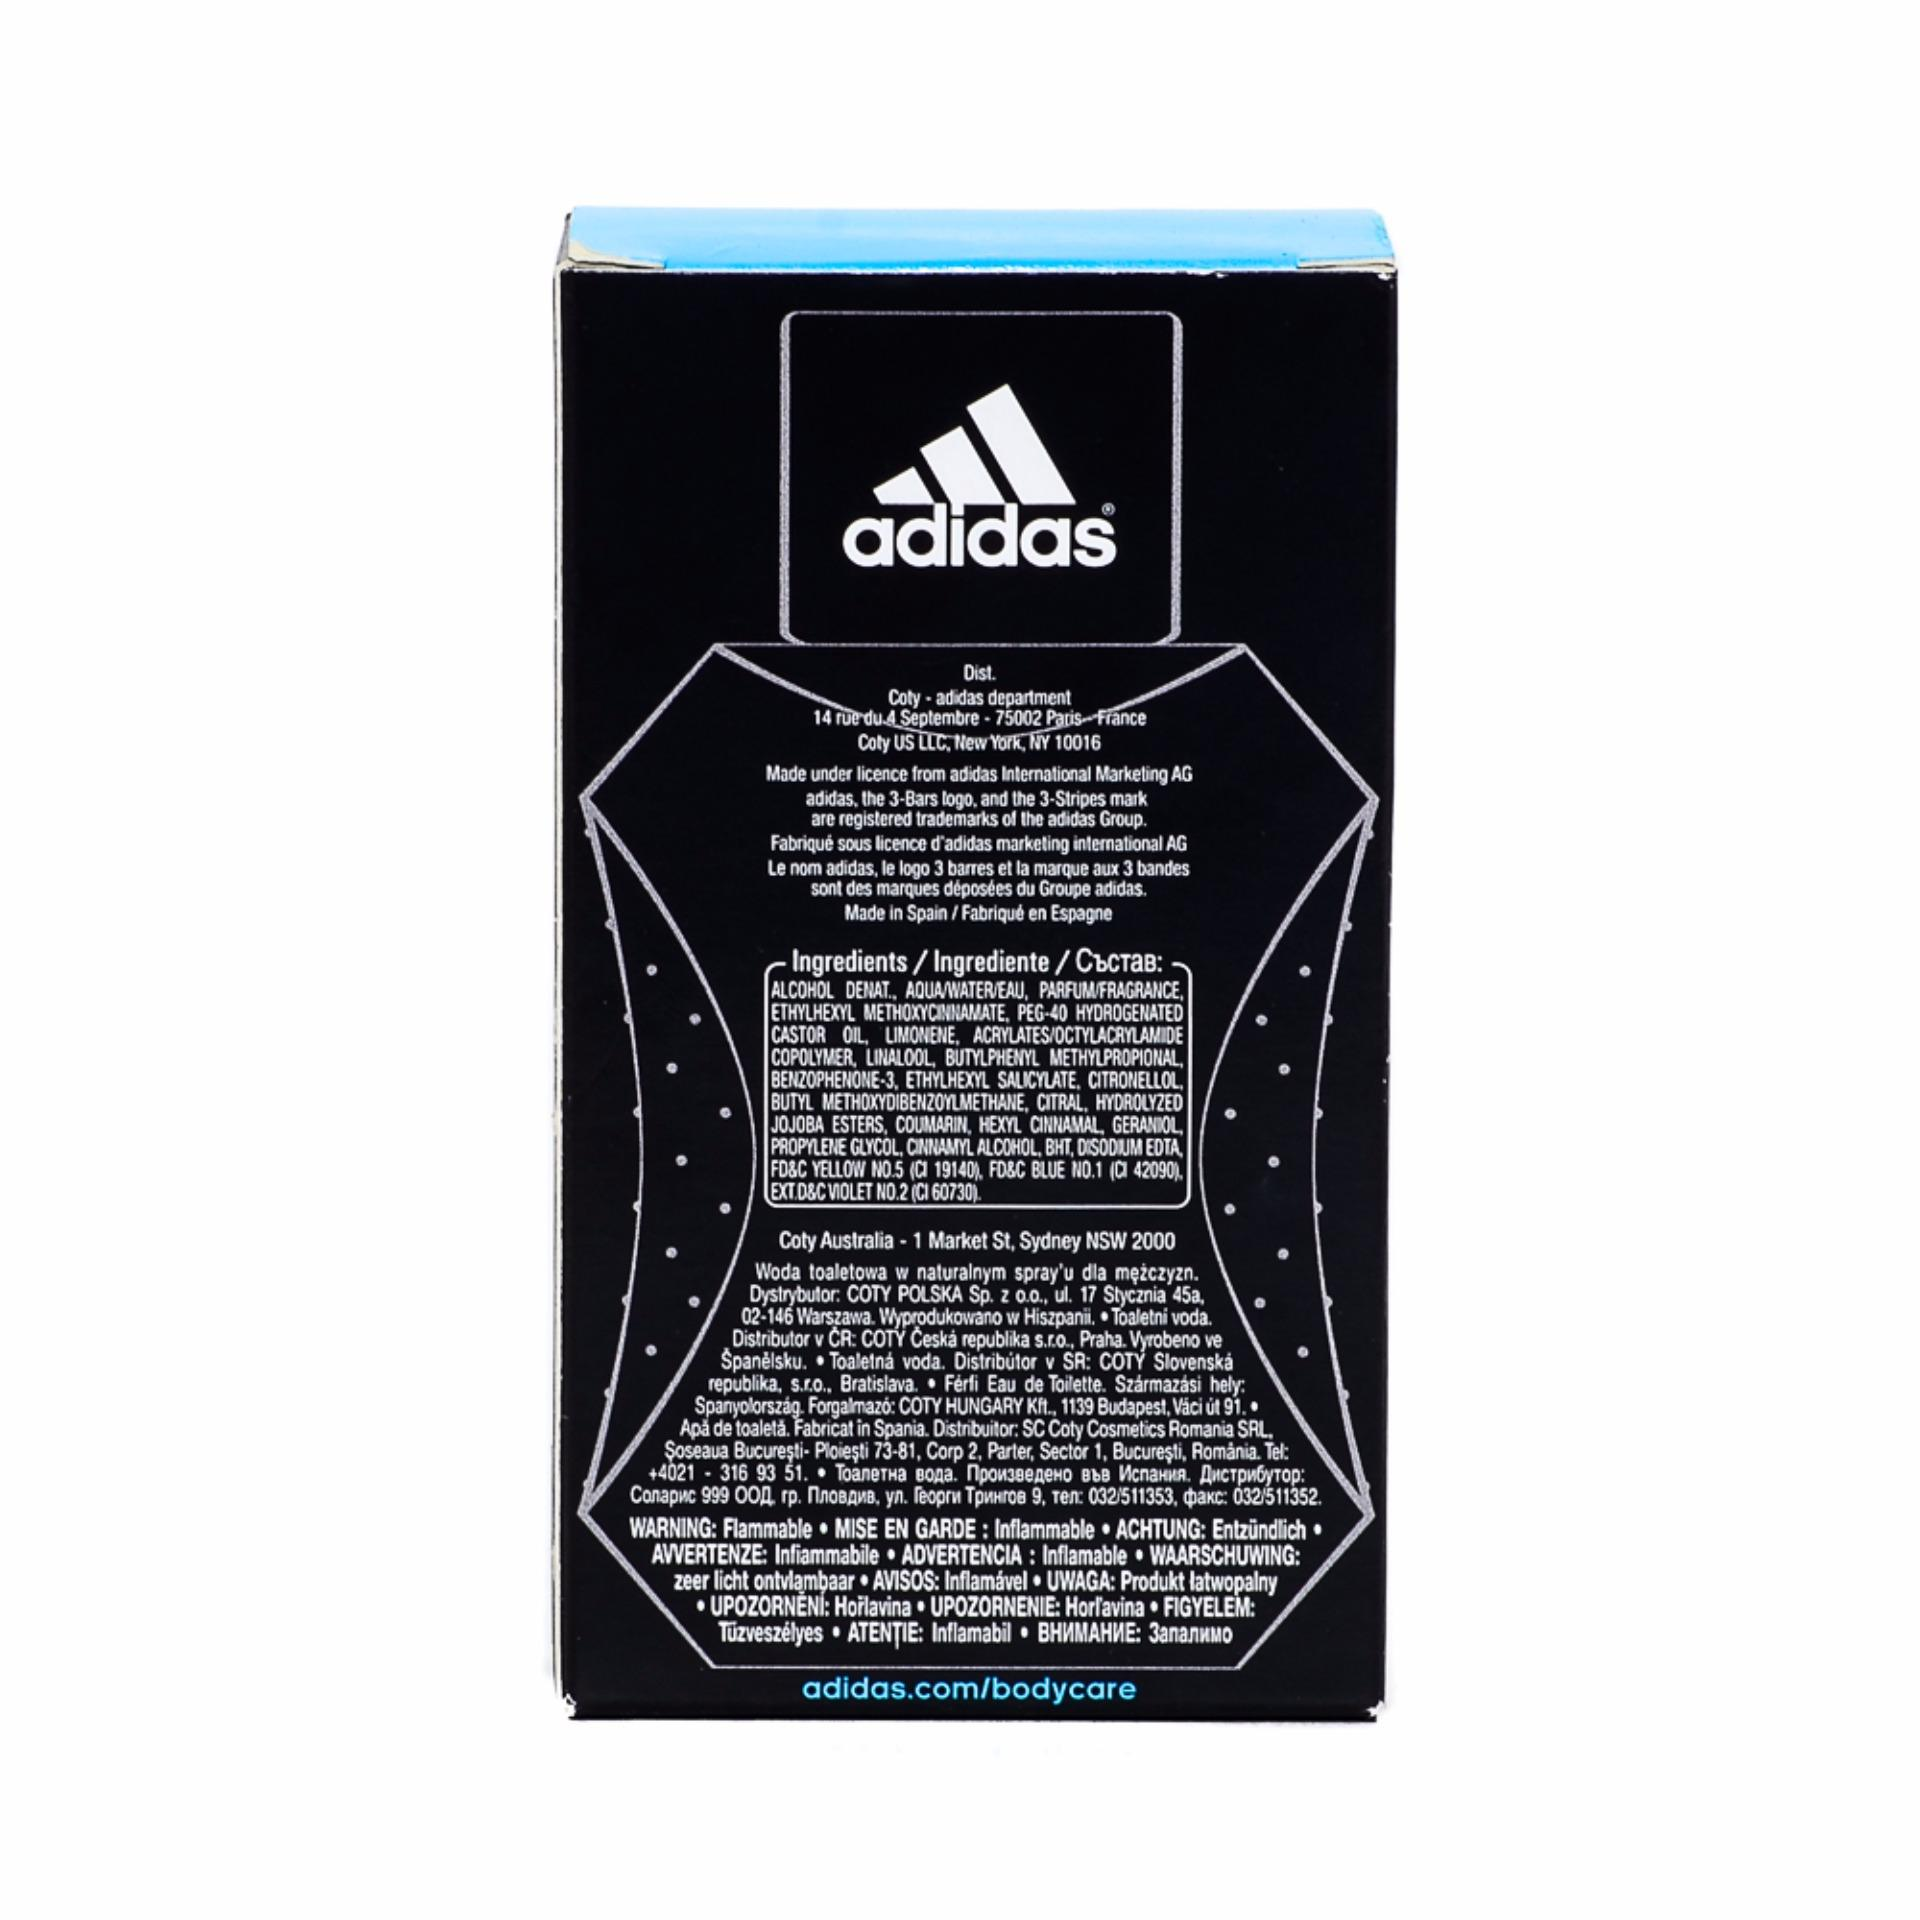 Adidas Eau De Toilette Ice Dive Natural Spray 50ml - thumbnail